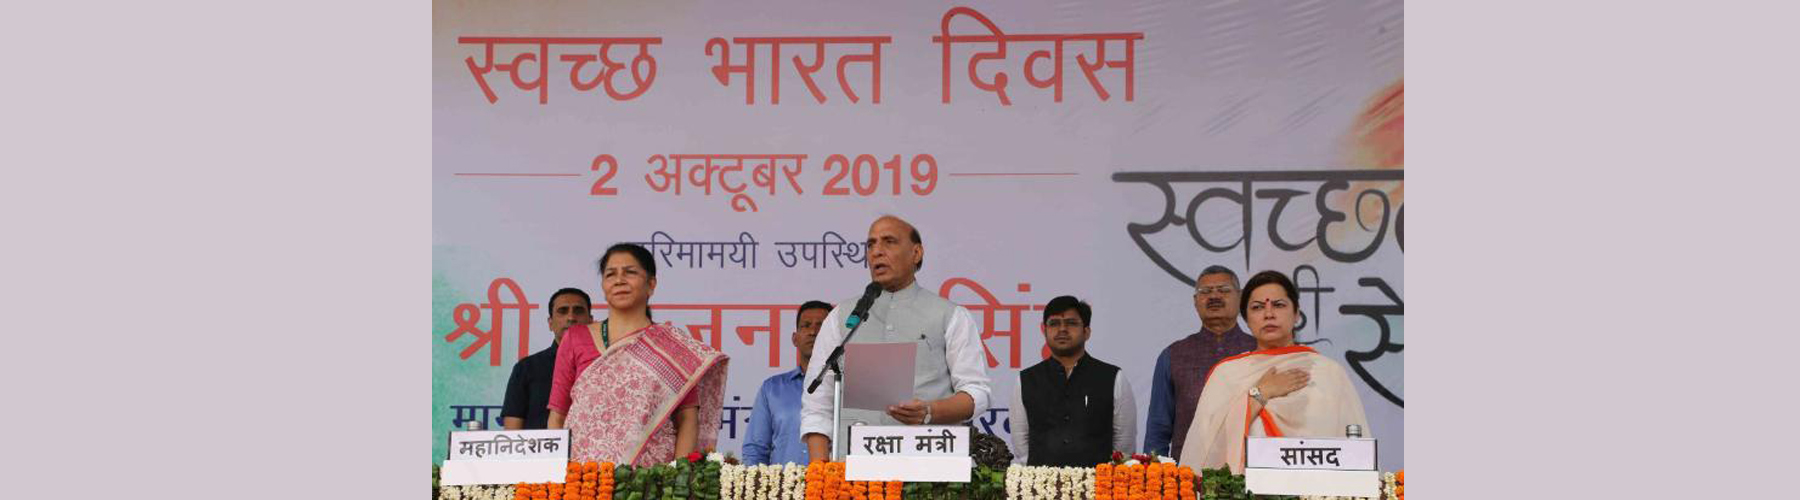 Raksha Mantri Shri Rajnath Singh administrating Swacchta oath to the people after unveiling statue of Mahatma Gandhi on his 150th birth anniversary celebrations in New Delhi on Wednesday, October 2, 2019. Also seen in the picture are Member of Parliament